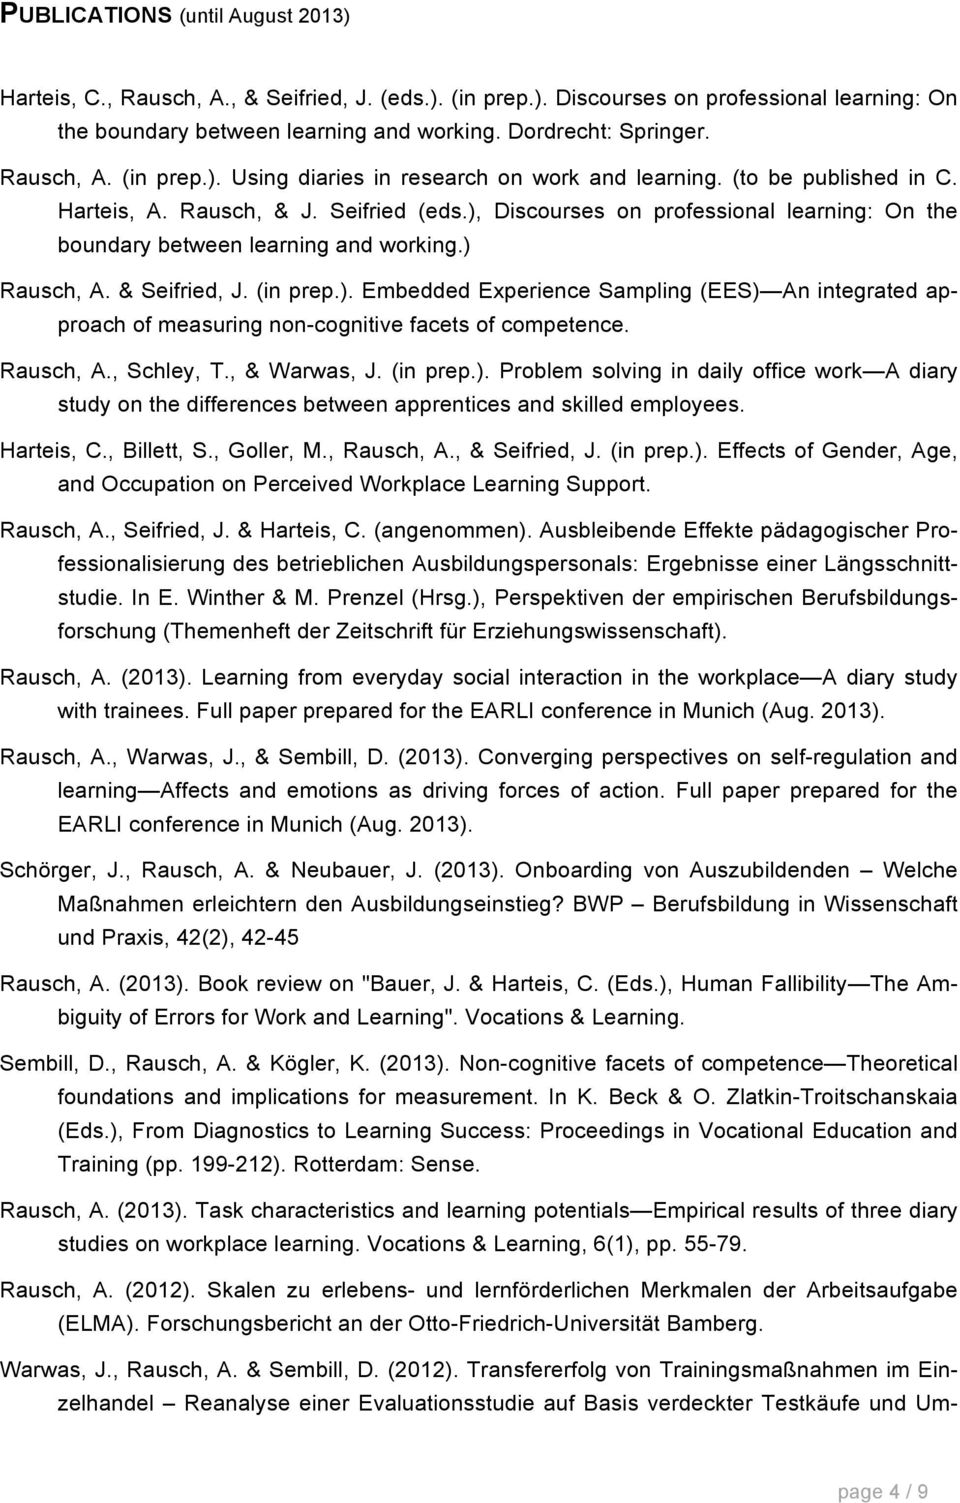 ), Discourses on professional learning: On the boundary between learning and working.) Rausch, A. & Seifried, J. (in prep.). Embedded Experience Sampling (EES) An integrated approach of measuring non-cognitive facets of competence.